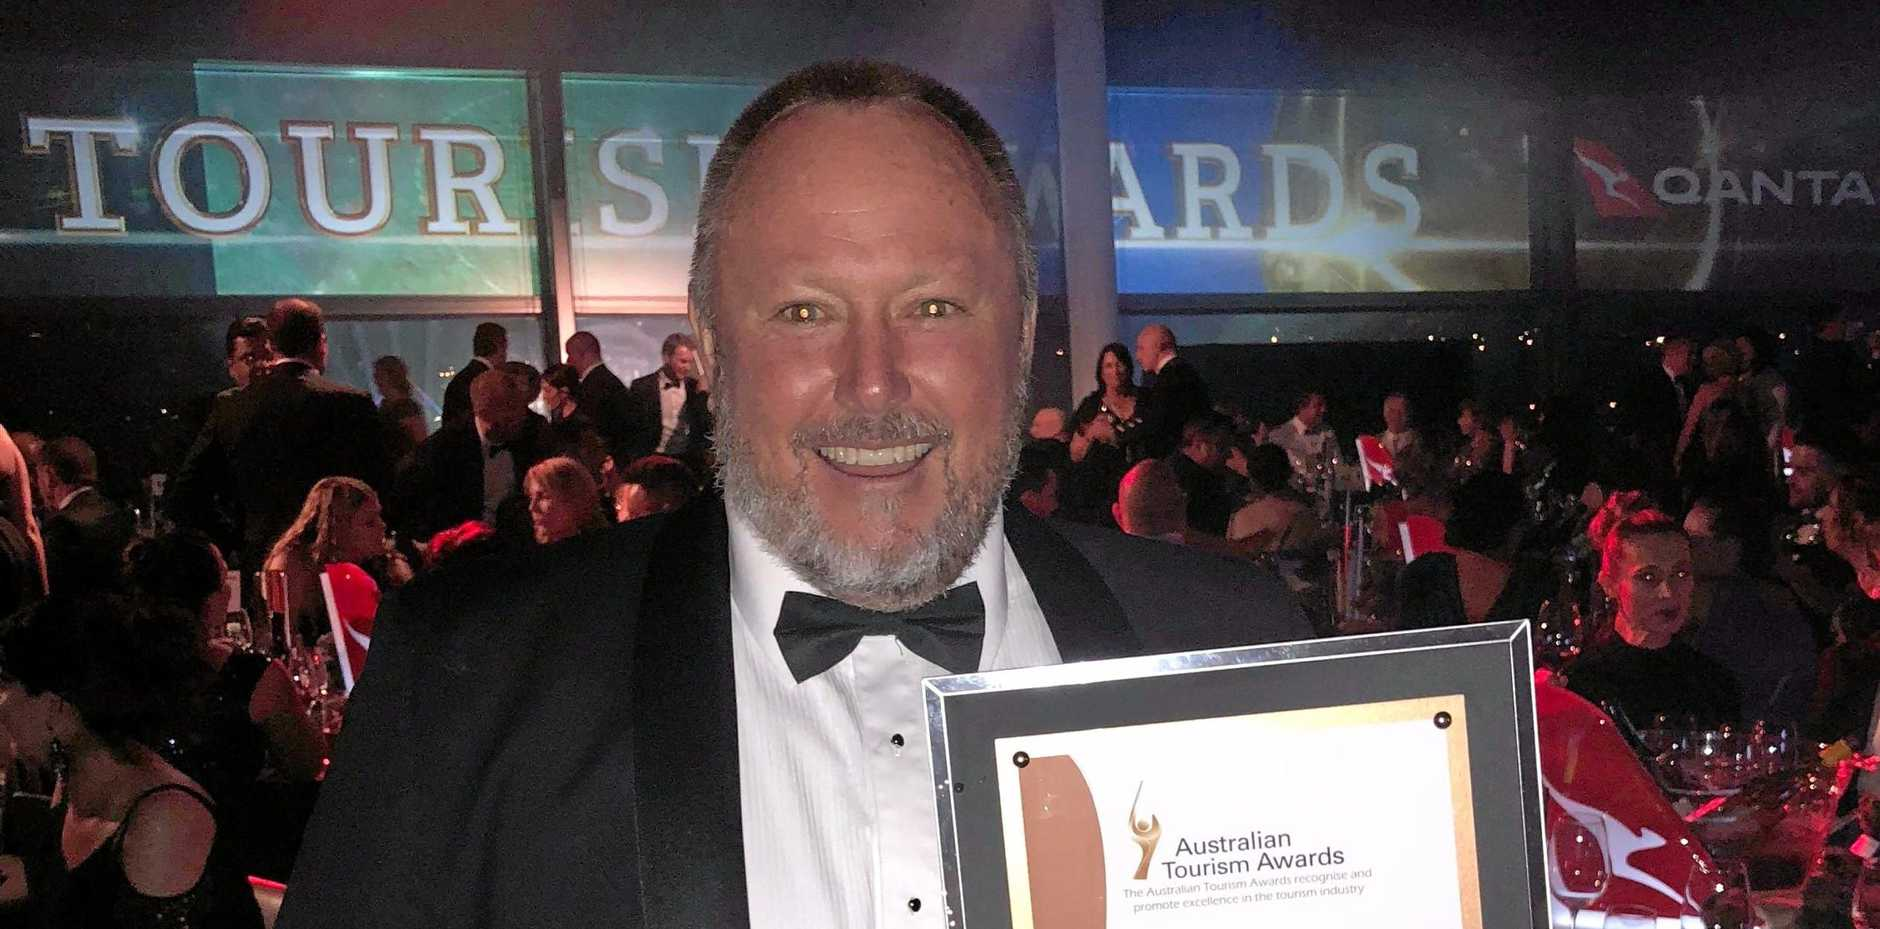 Owner of BIG4 Adventure Whitsunday Resort Greg McKinnon at the Australian Tourism Awards in Perth on February 23, 2018.